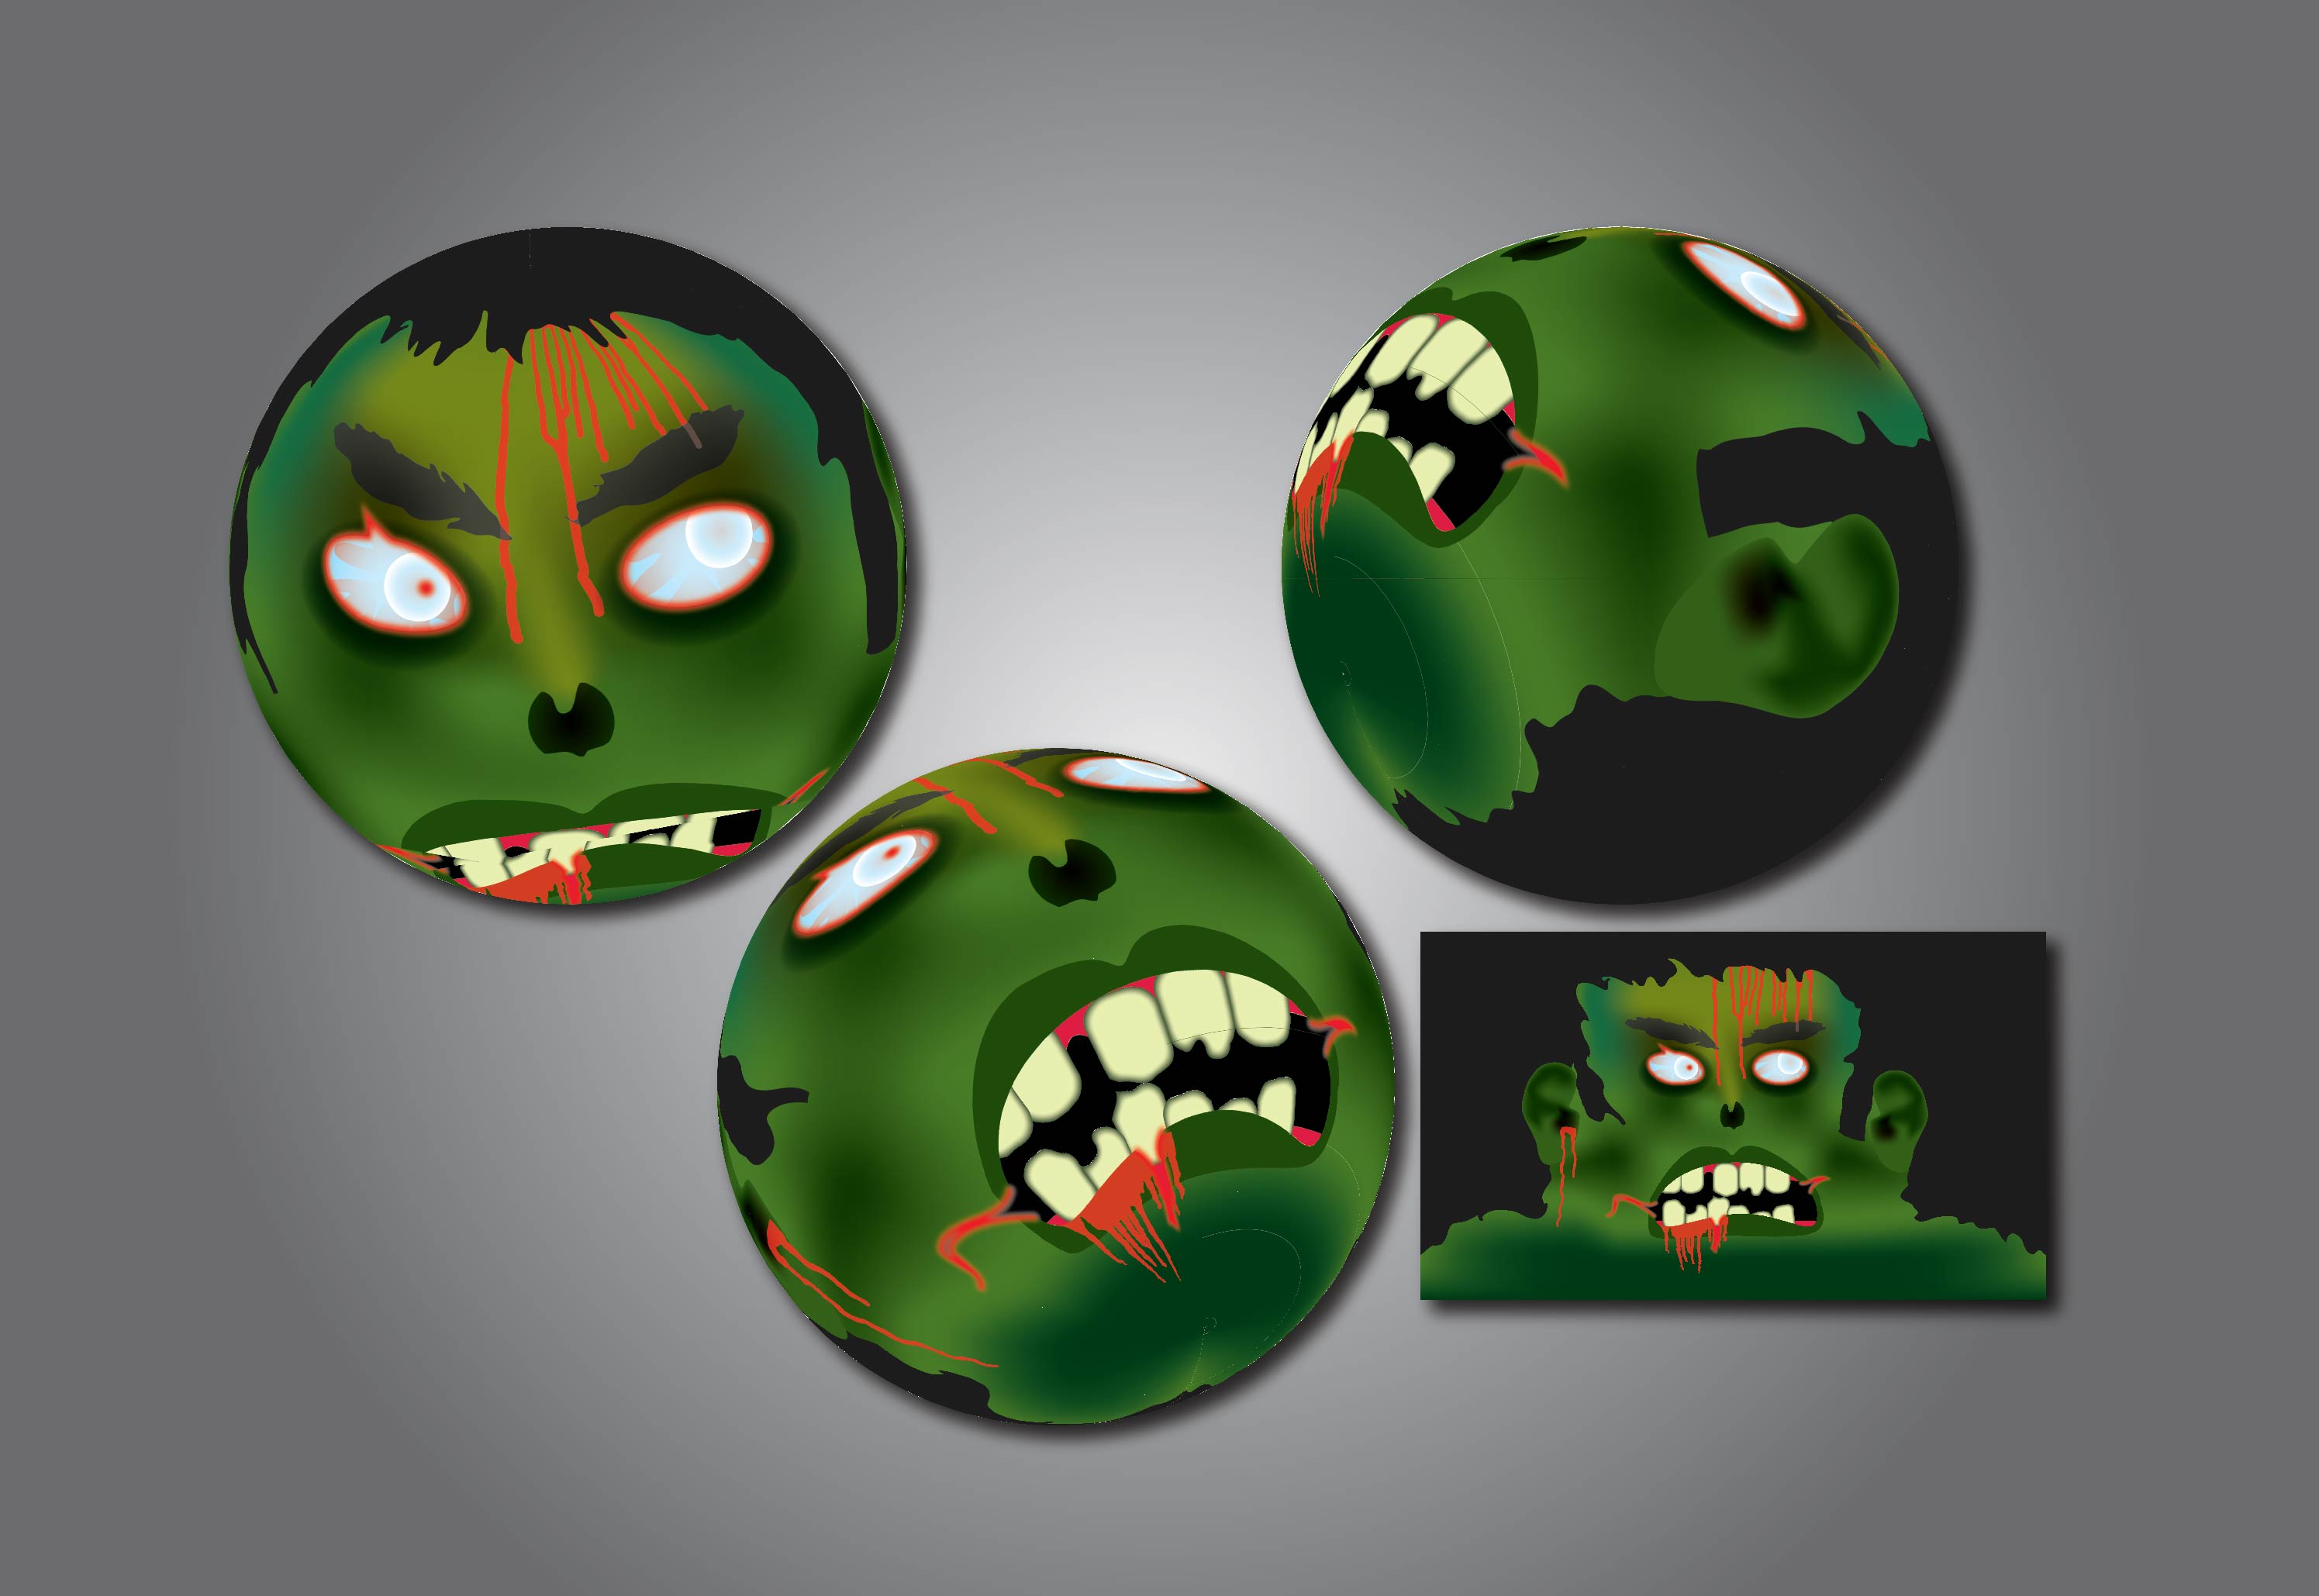 Zombie ball designs